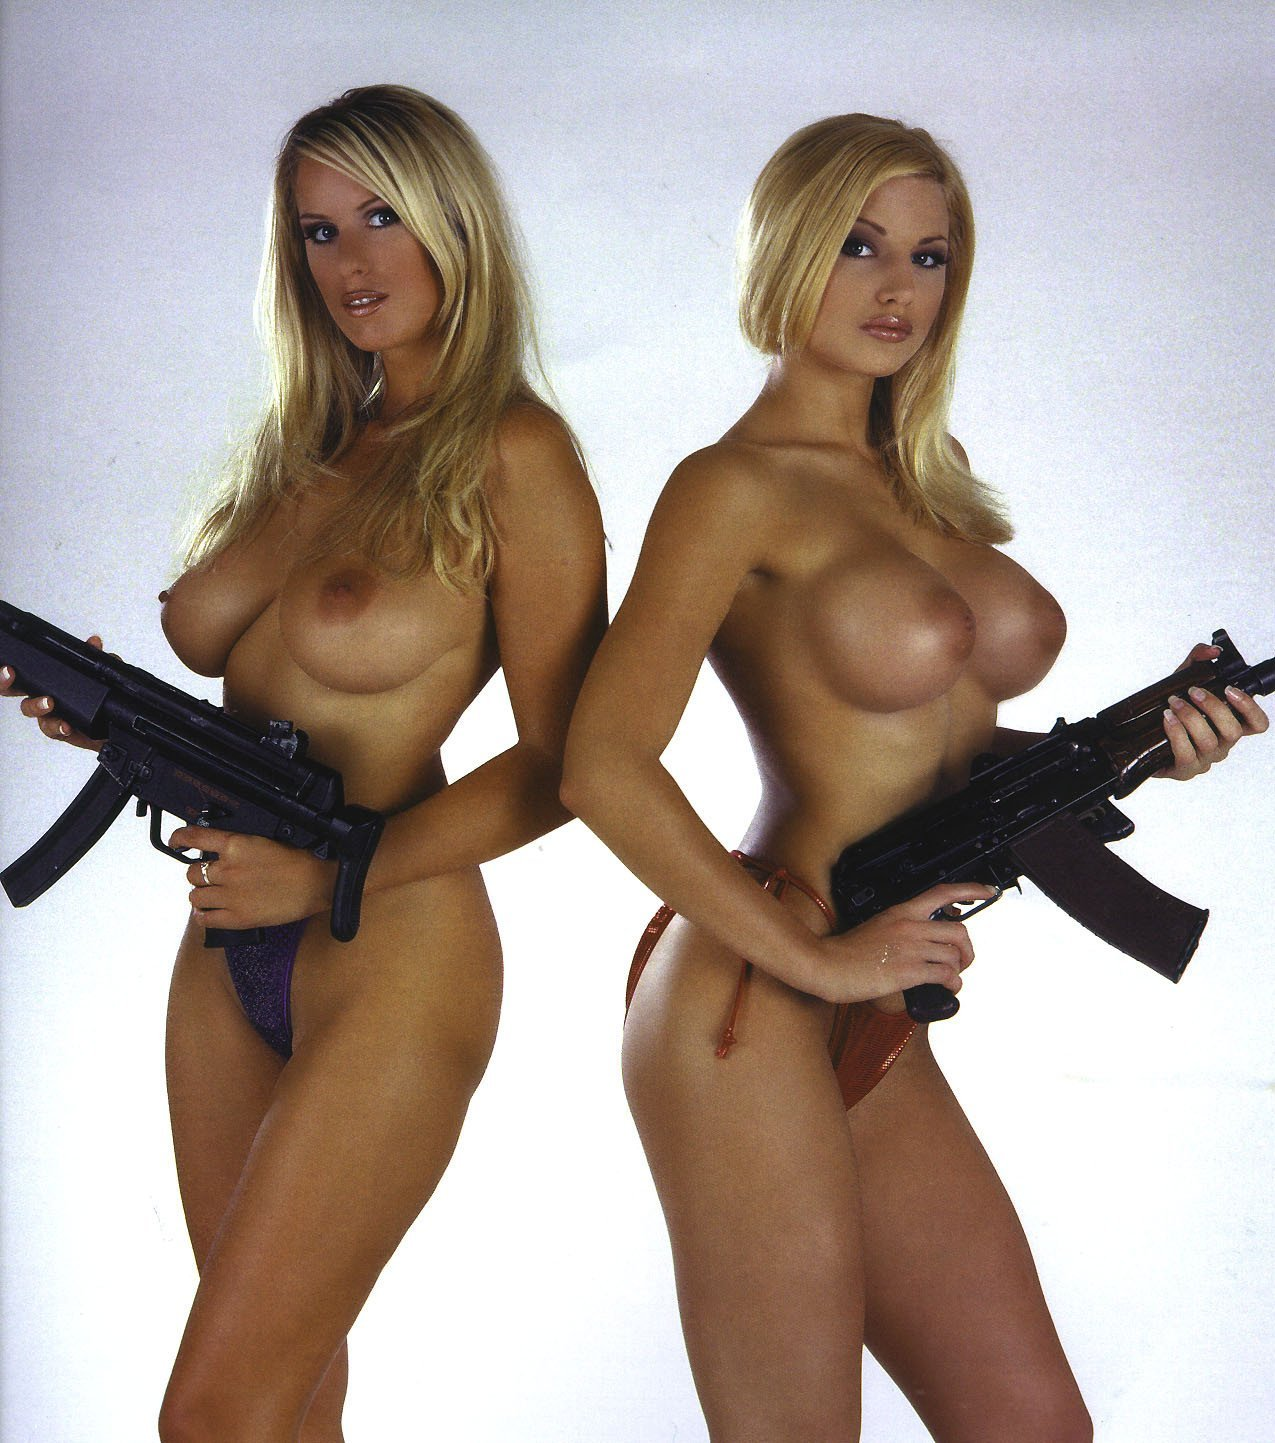 Girl gun naked with Best of